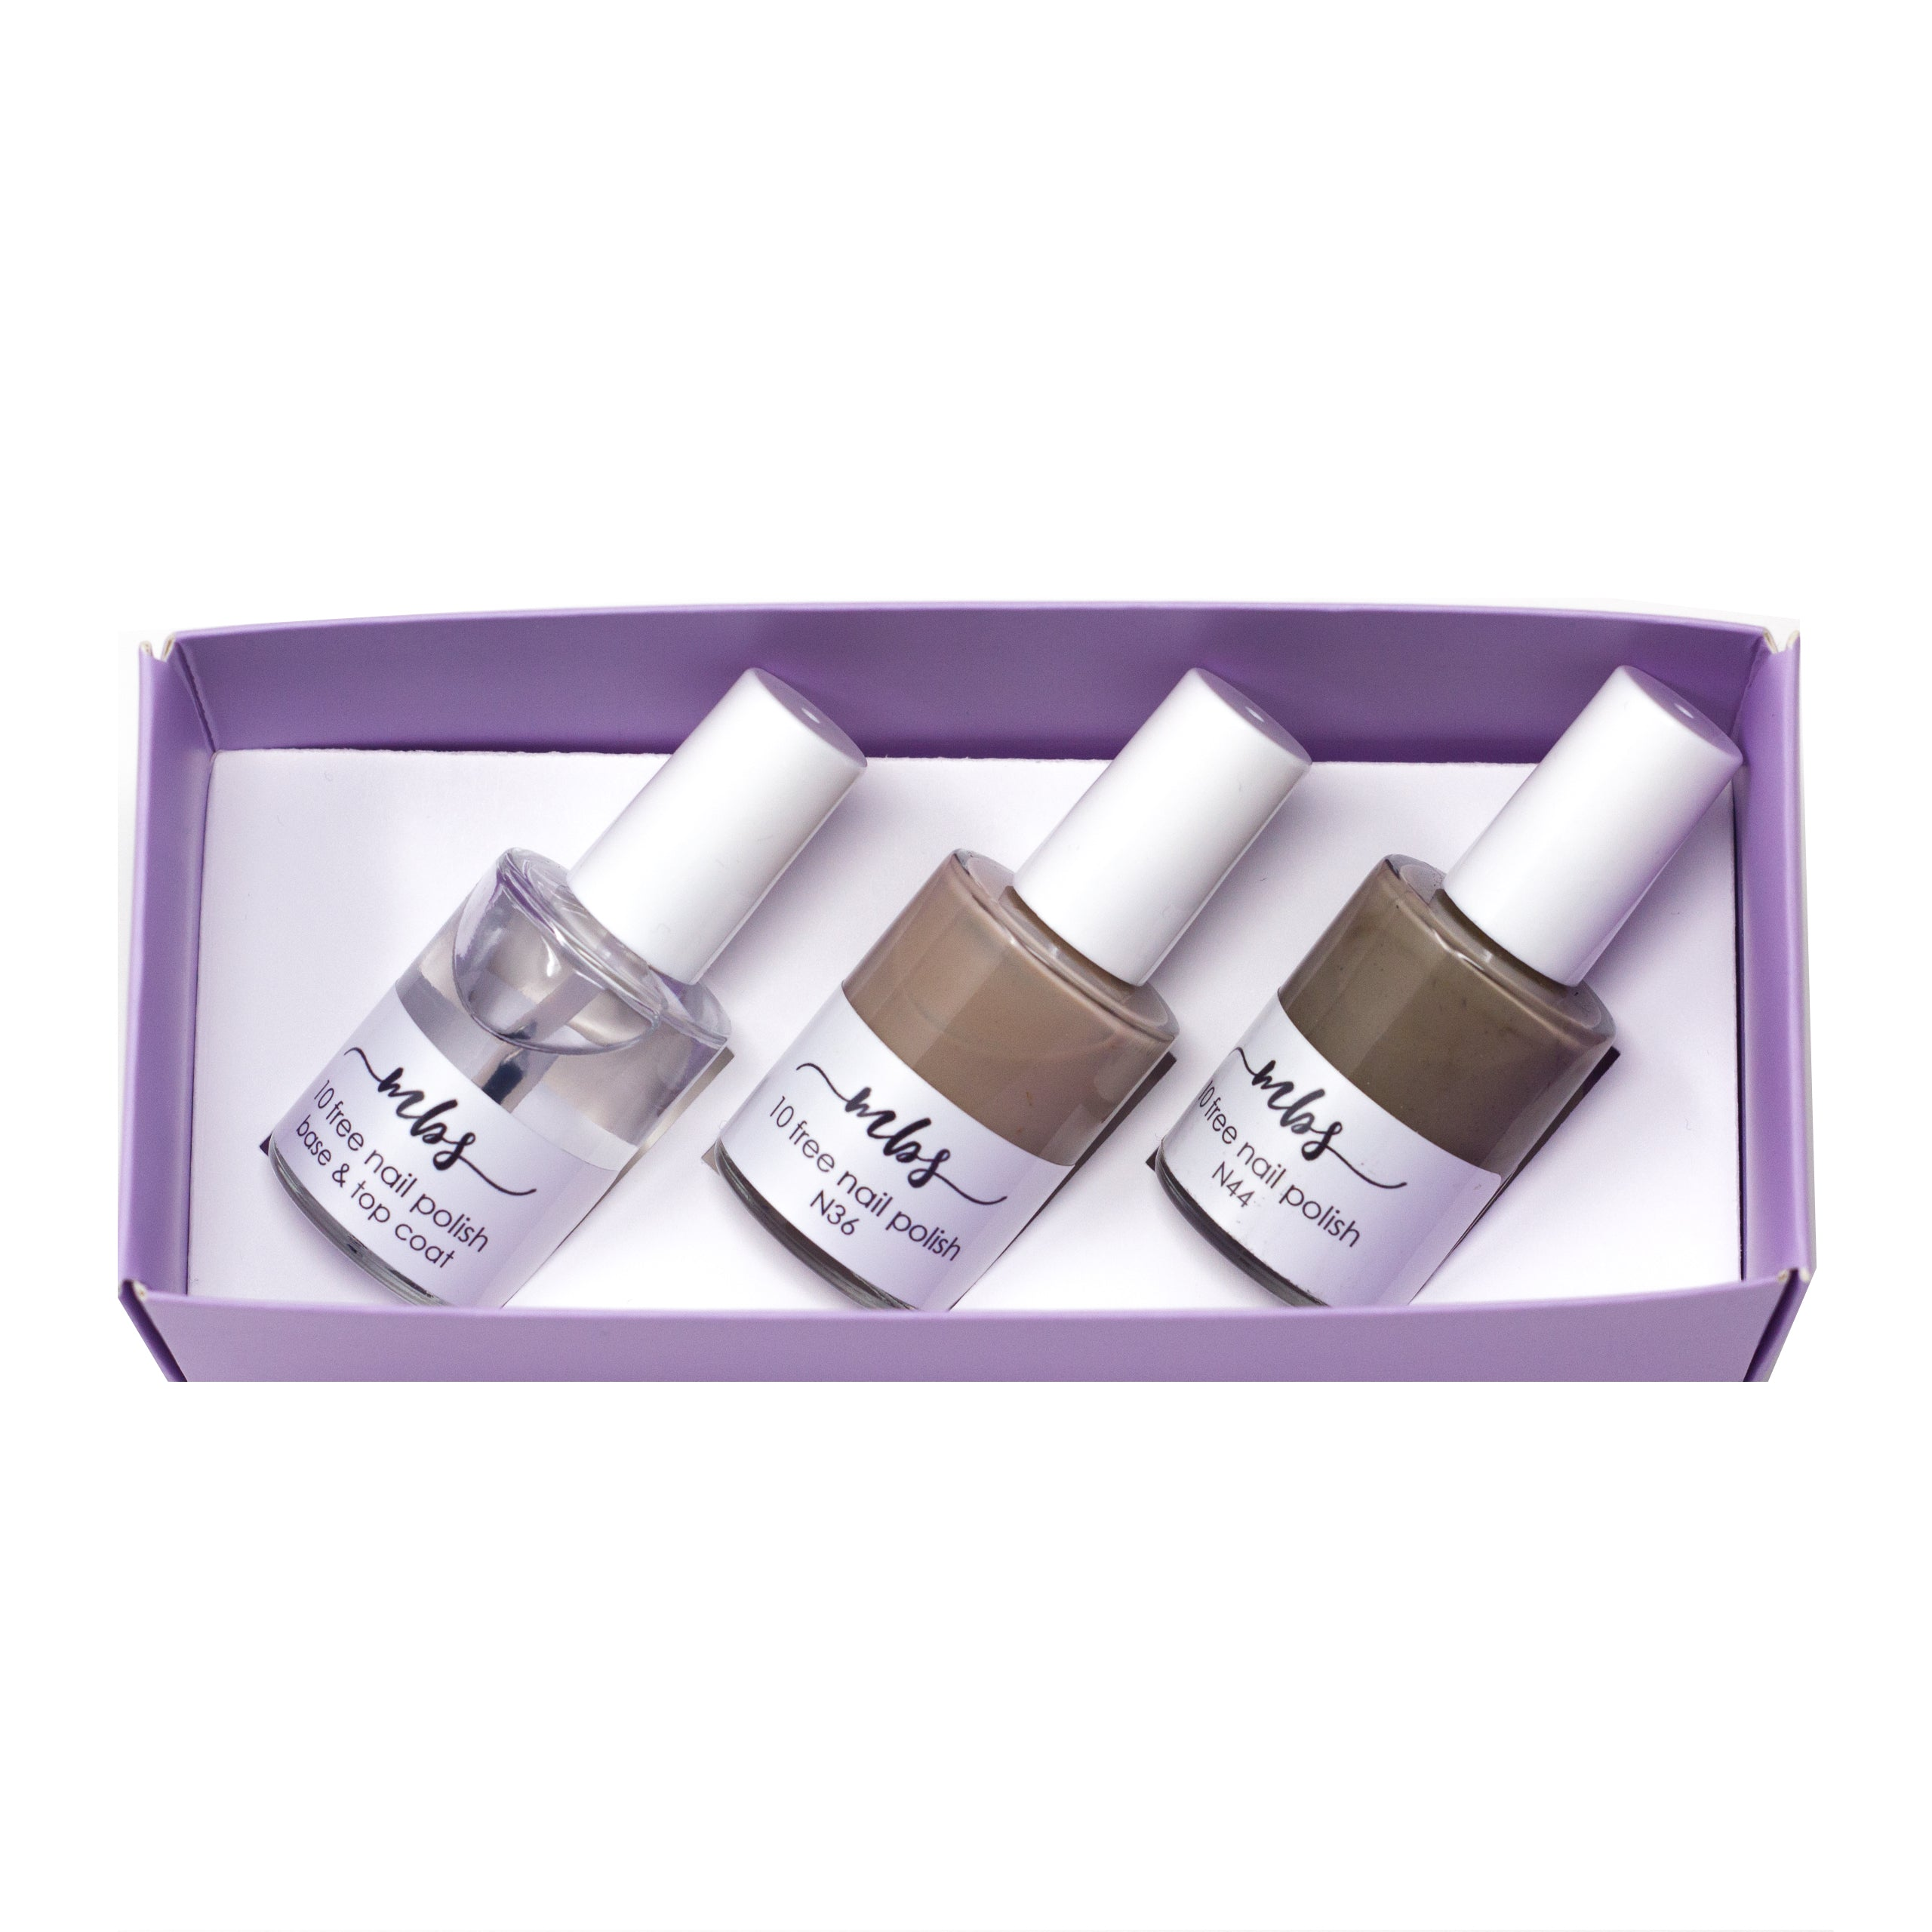 Nail Polish Trio (N36 + N44 + Clear Coat)-Gifts-Morning Blossom Studio